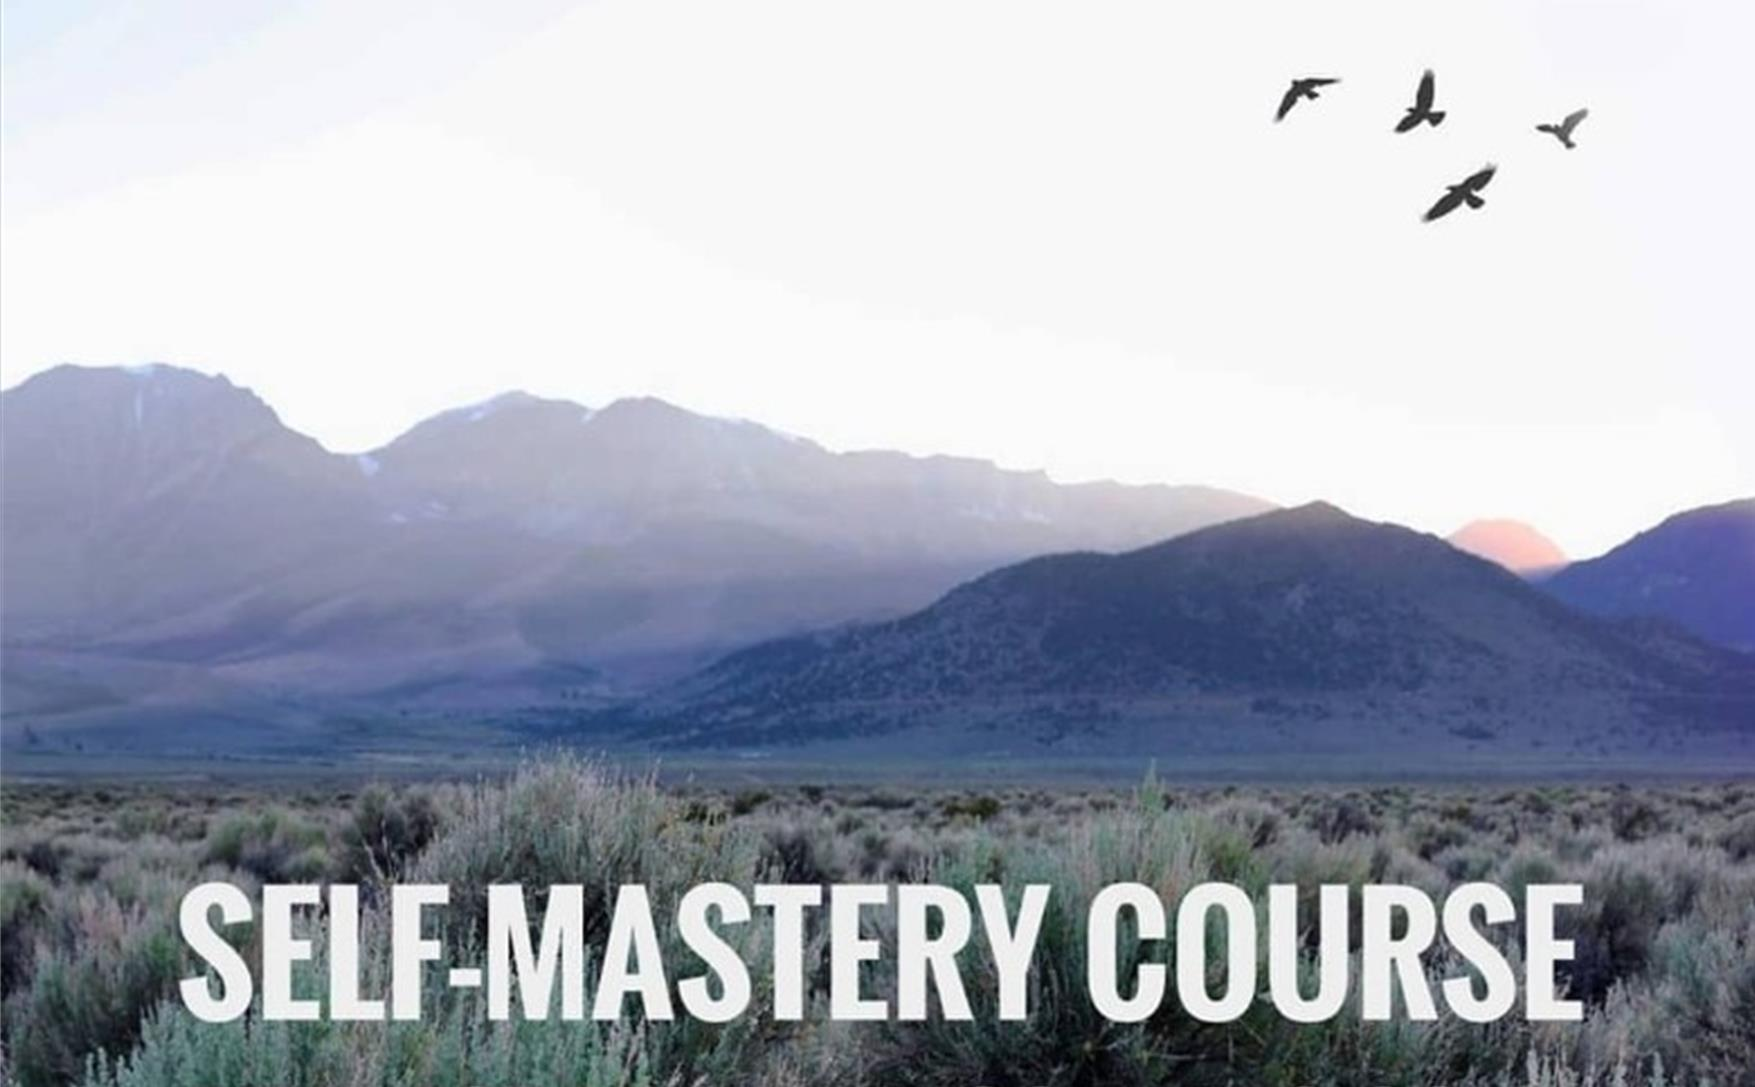 Self Mastery Course Awaken the Power Within